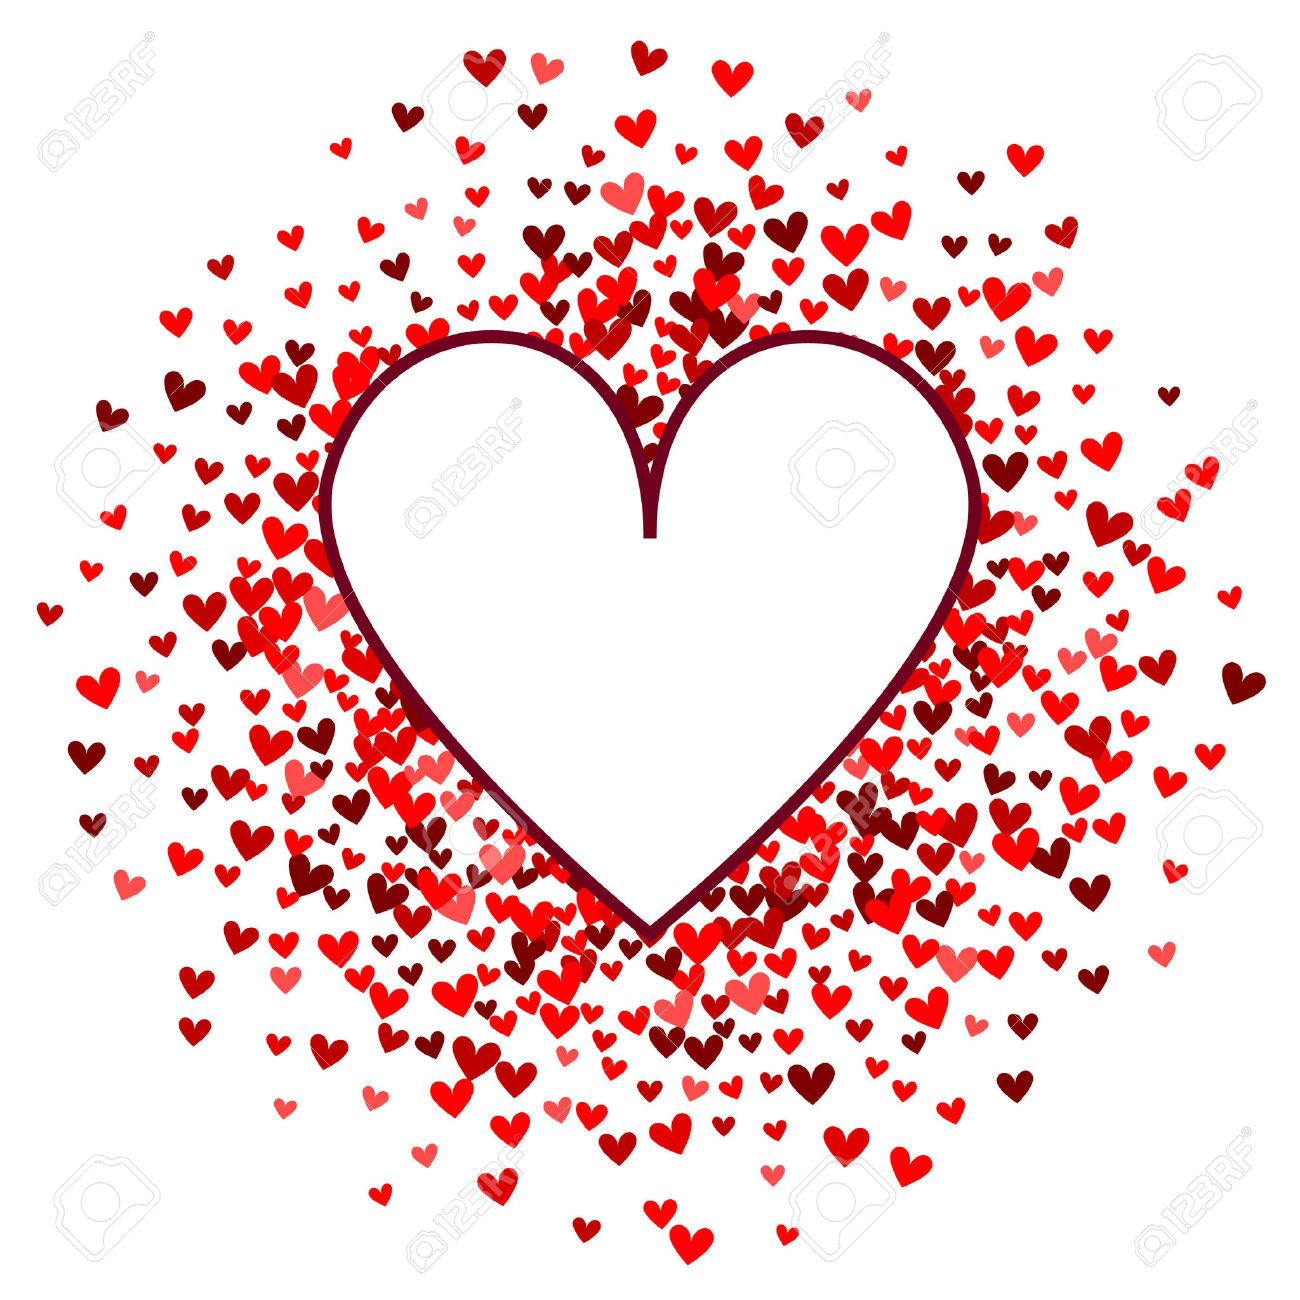 Romantic red heart background. Vector illustration for holiday design. Many flying hearts on white background. For wedding card, valentine's day greetings, lovely frame. - 51432060